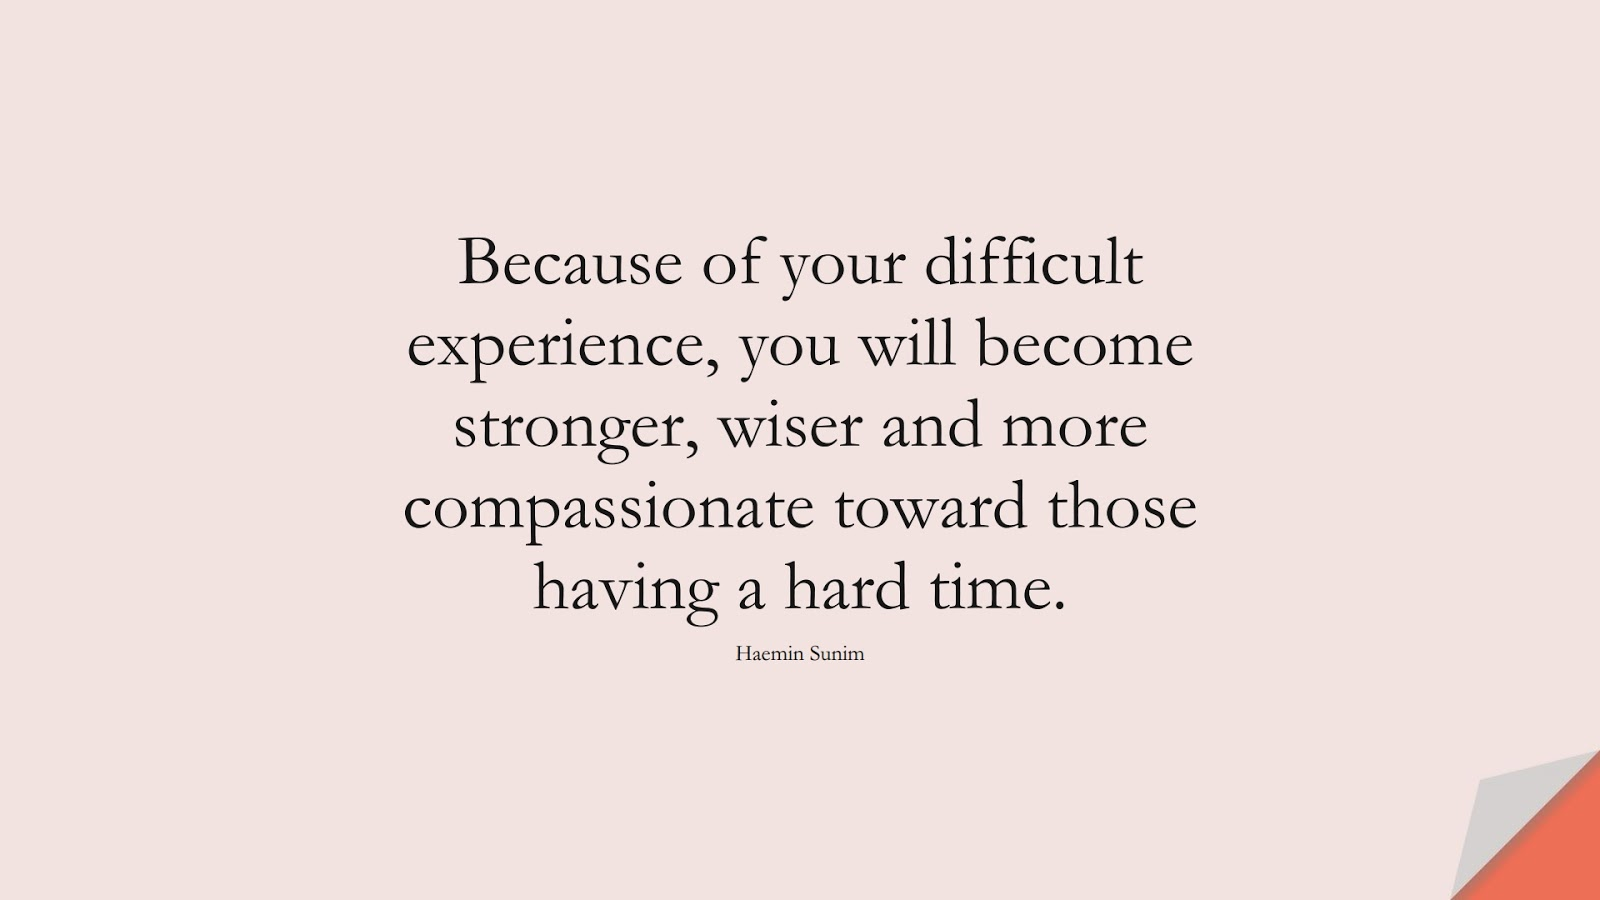 Because of your difficult experience, you will become stronger, wiser and more compassionate toward those having a hard time. (Haemin Sunim);  #DepressionQuotes